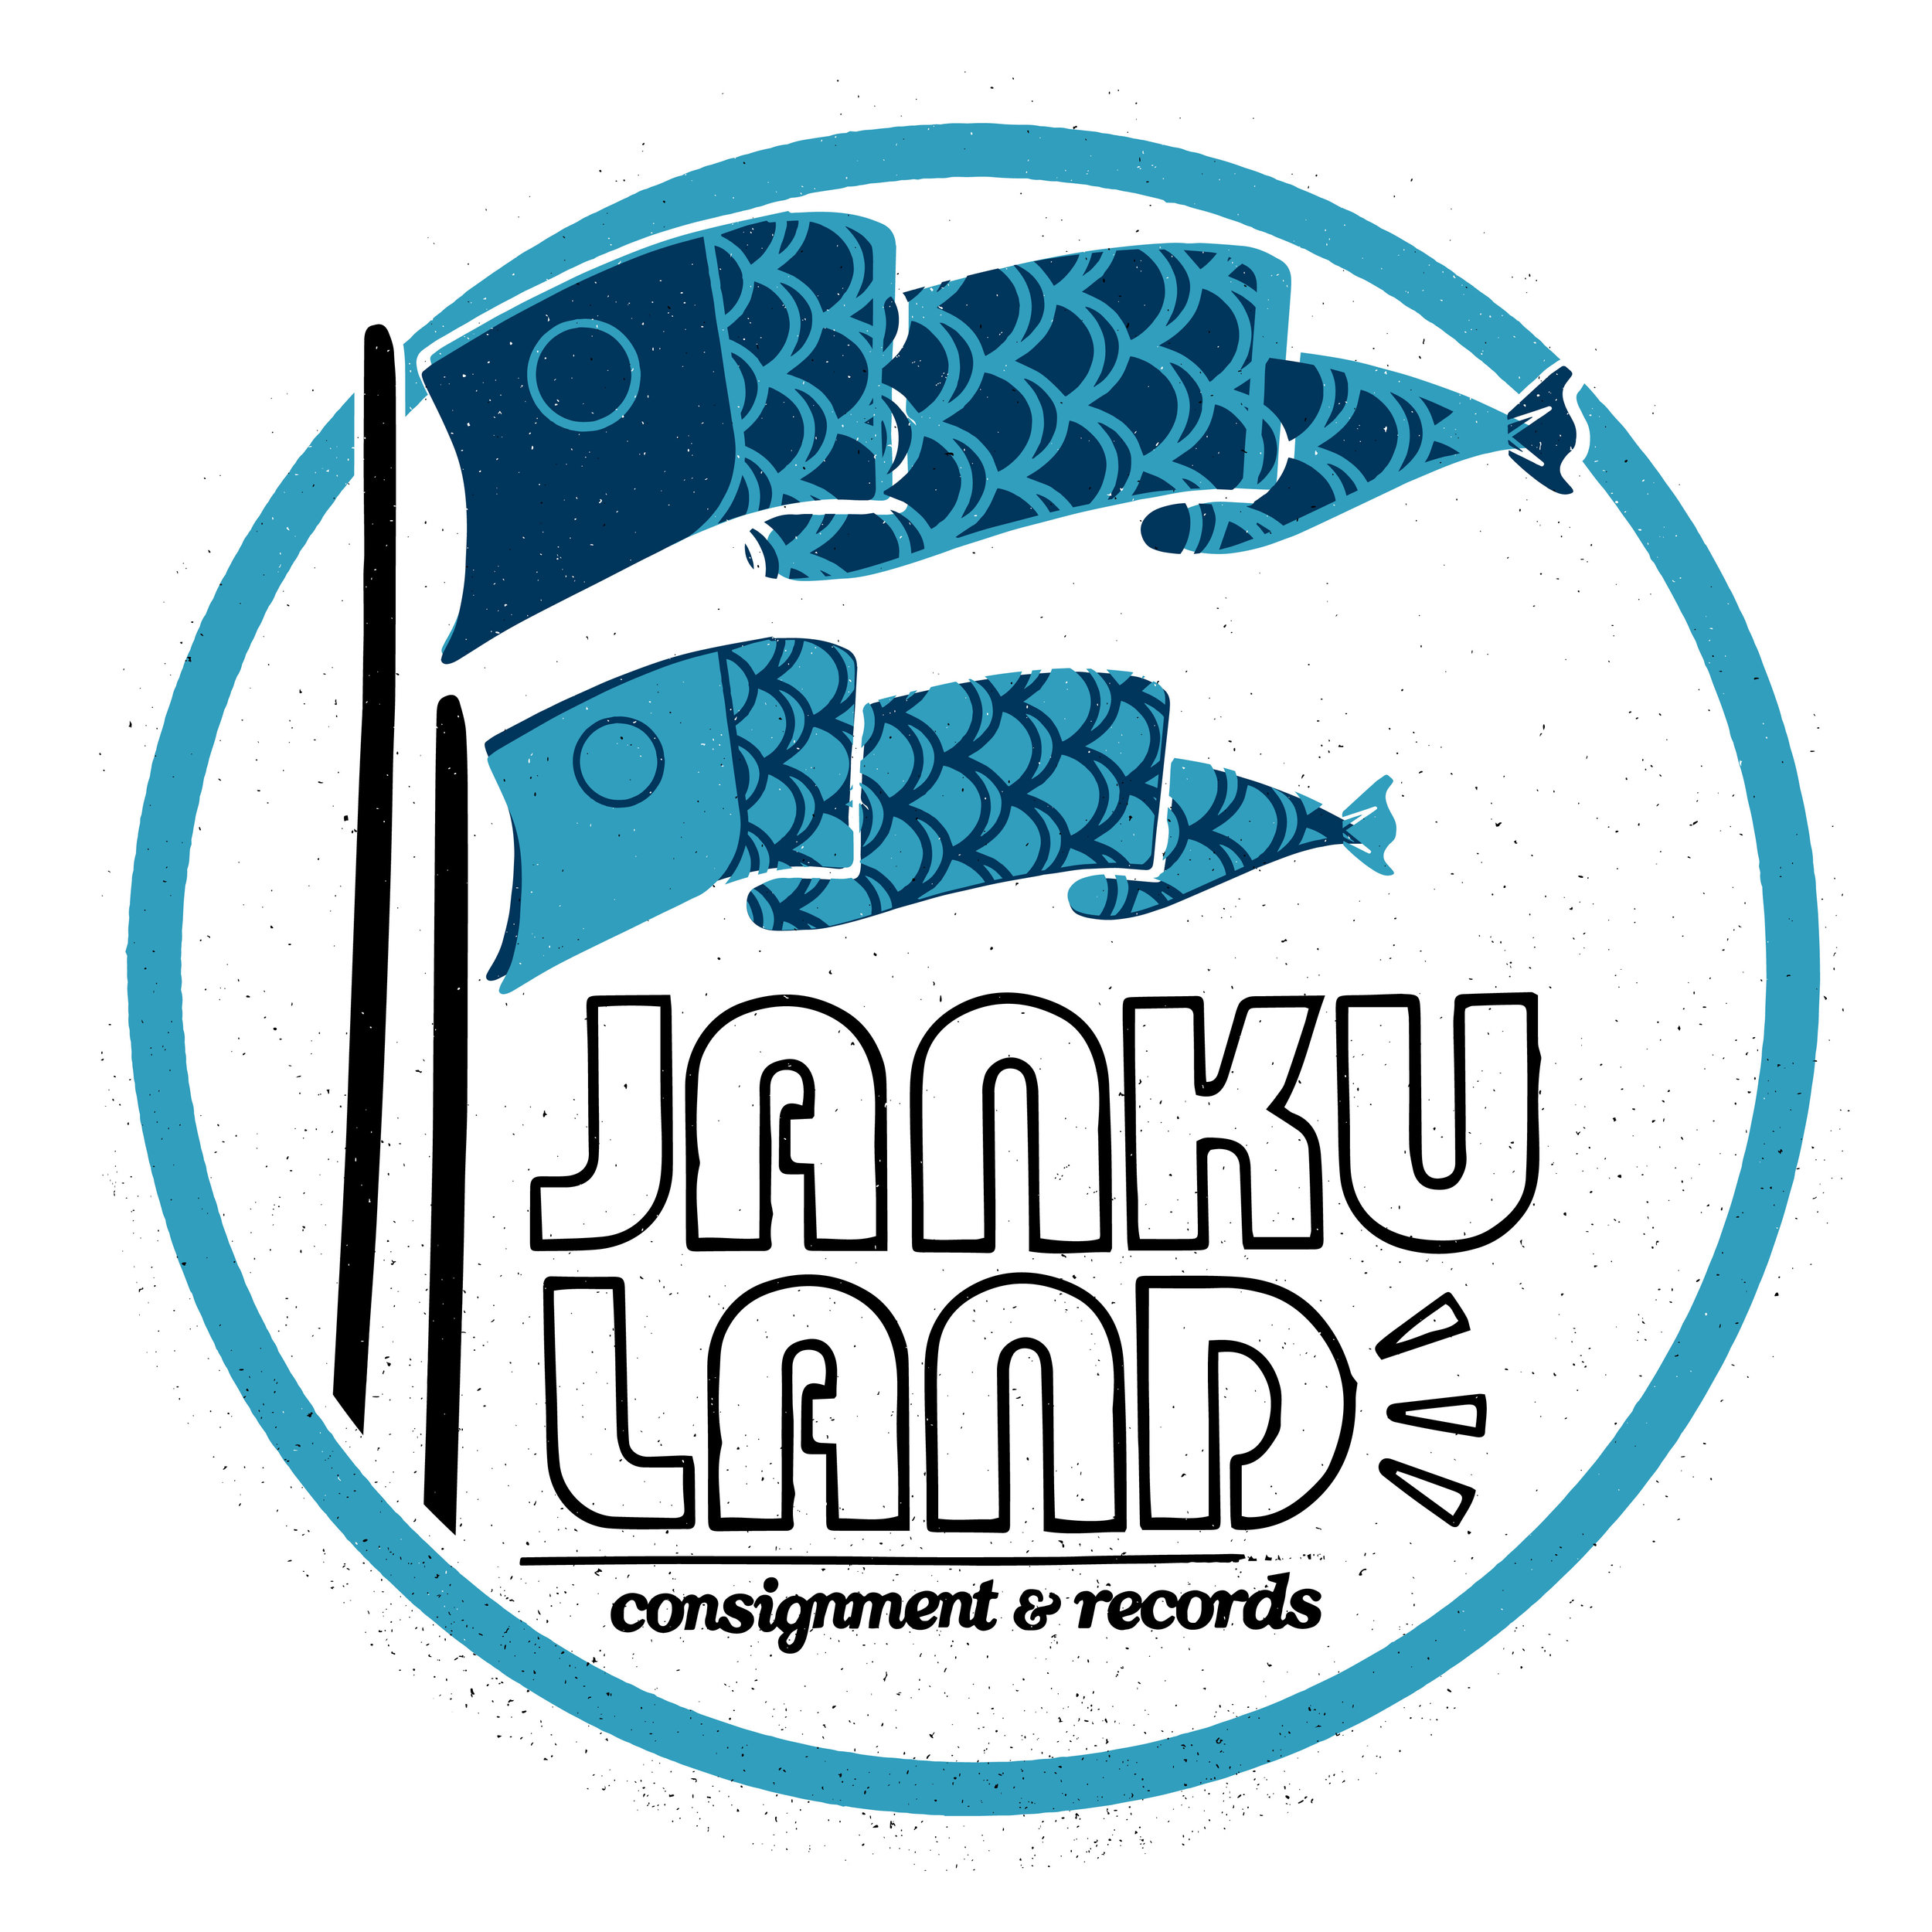 JankuLand_decal-01.jpg